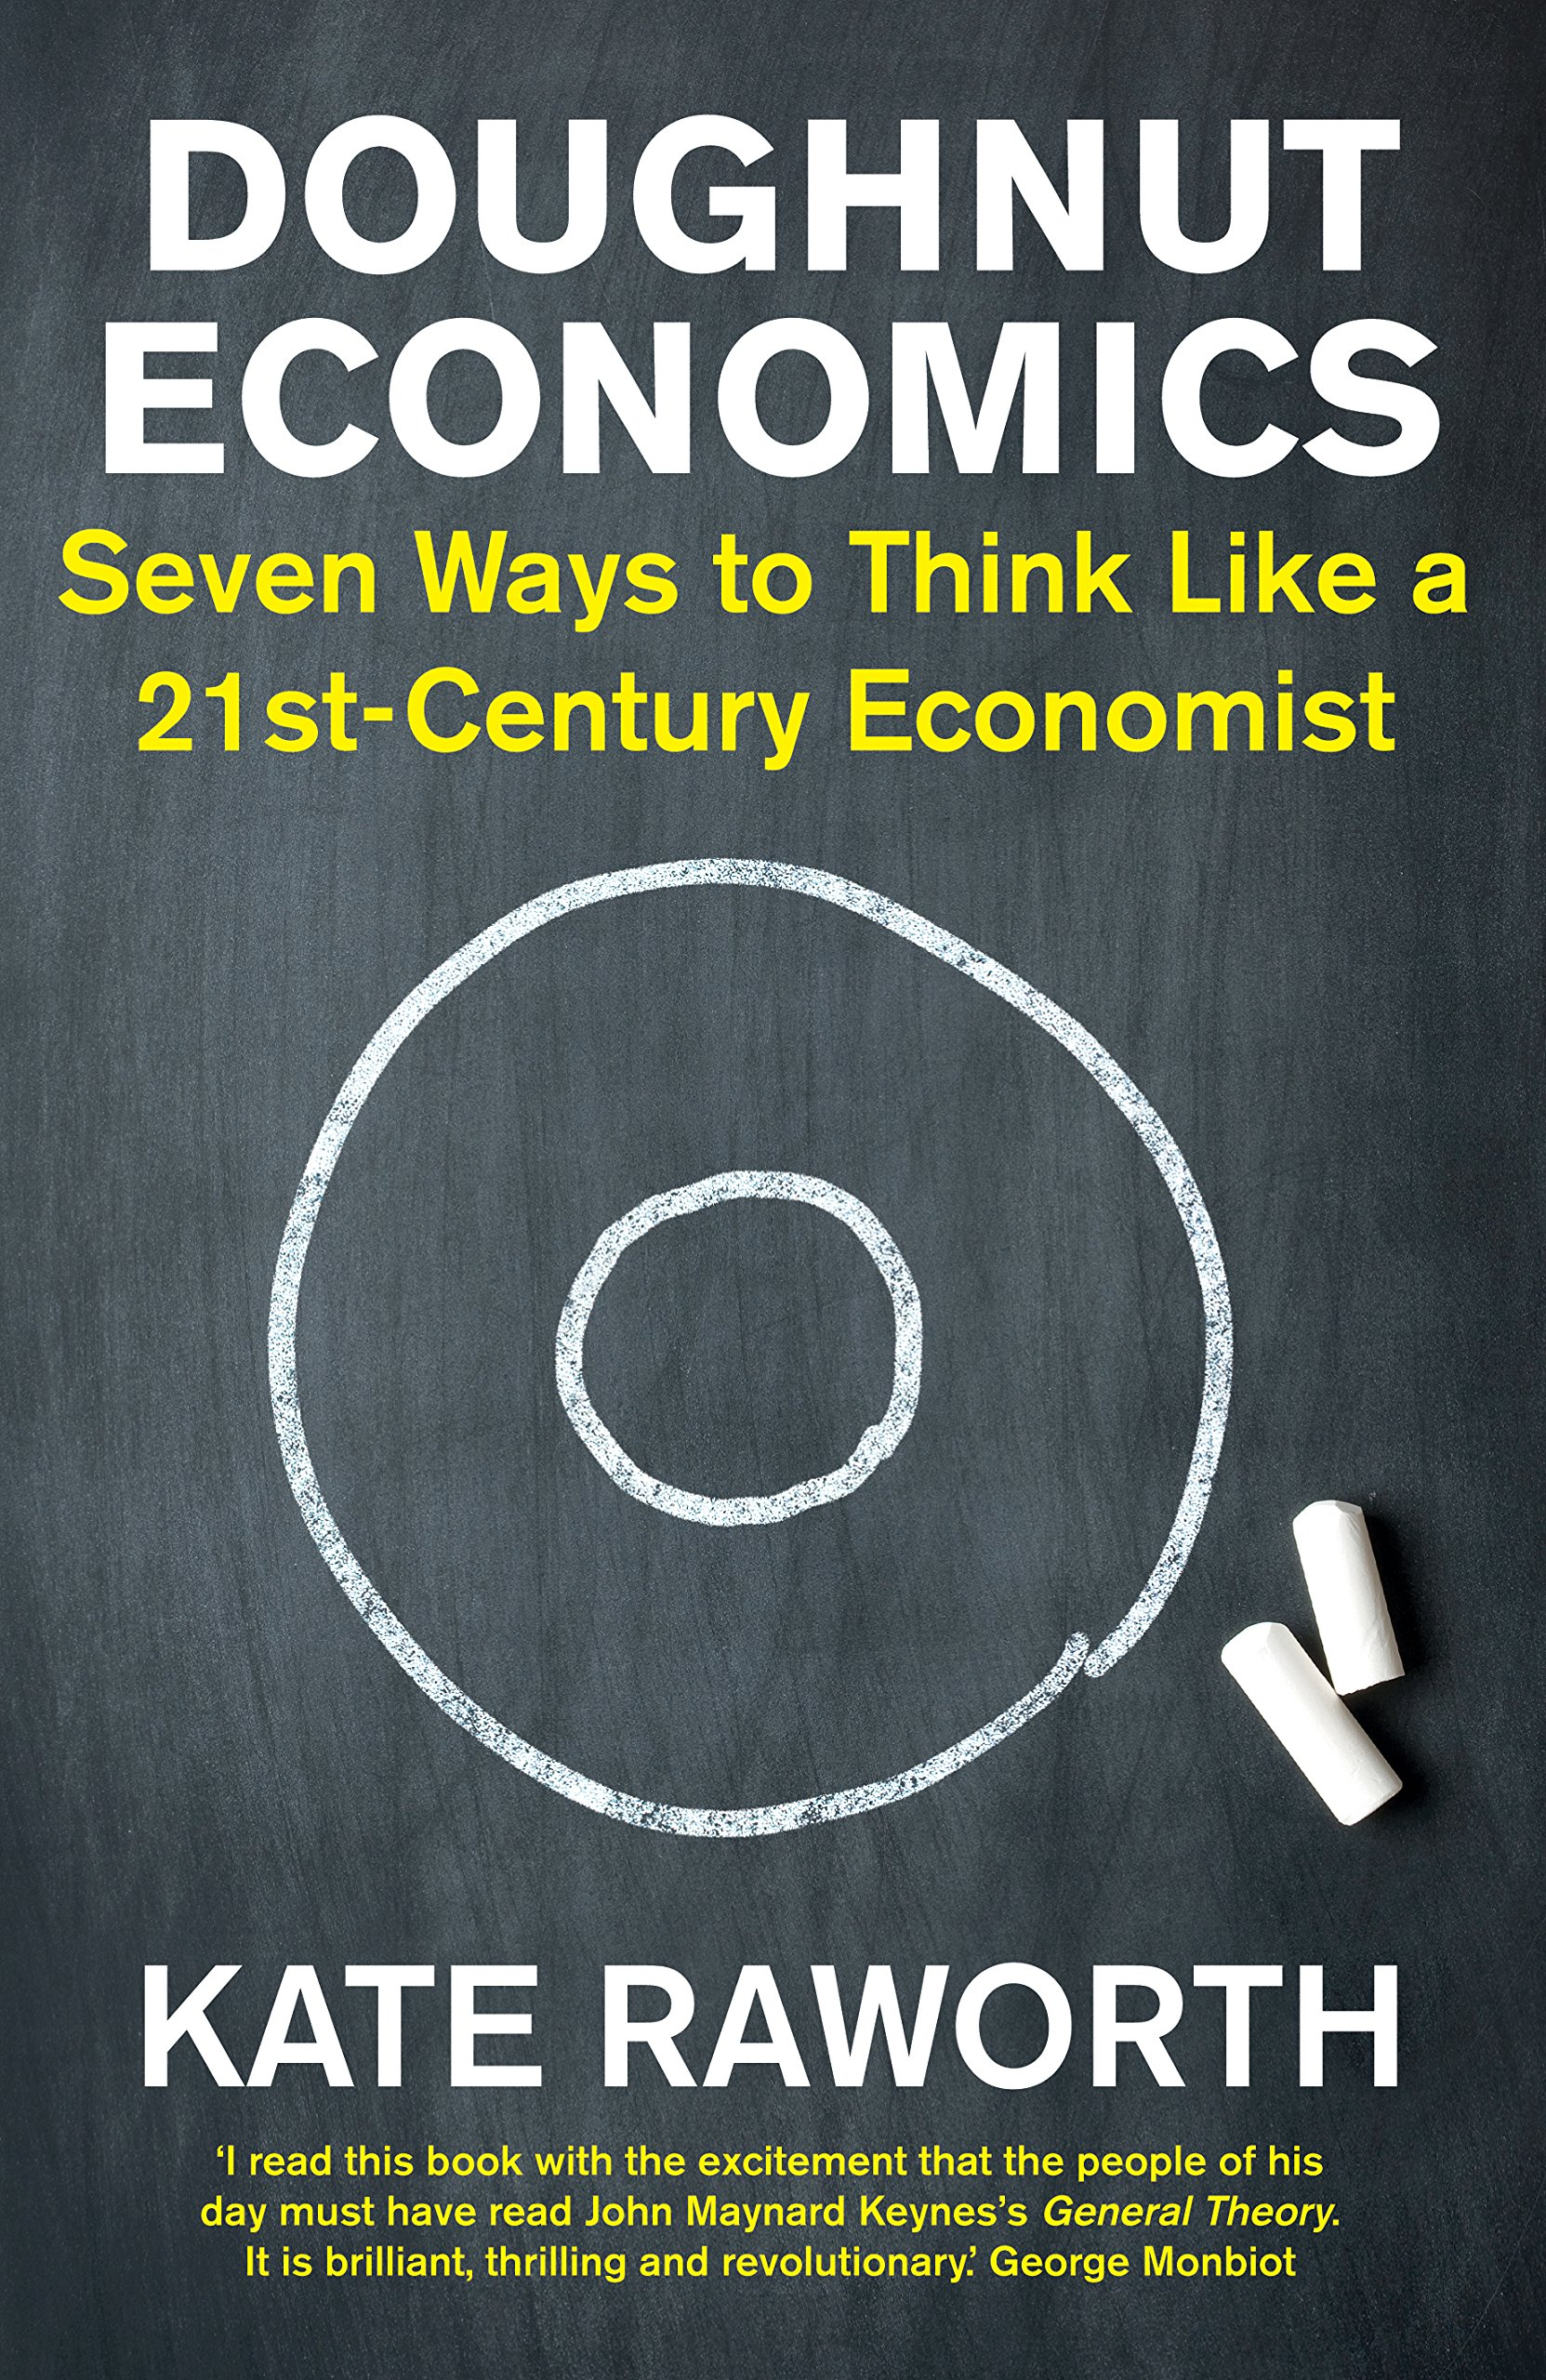 Doughnut Economics: Seven Ways to Think Like a 21st-Century Economist: Amazon.es: Kate Raworth: Libros en idiomas extranjeros